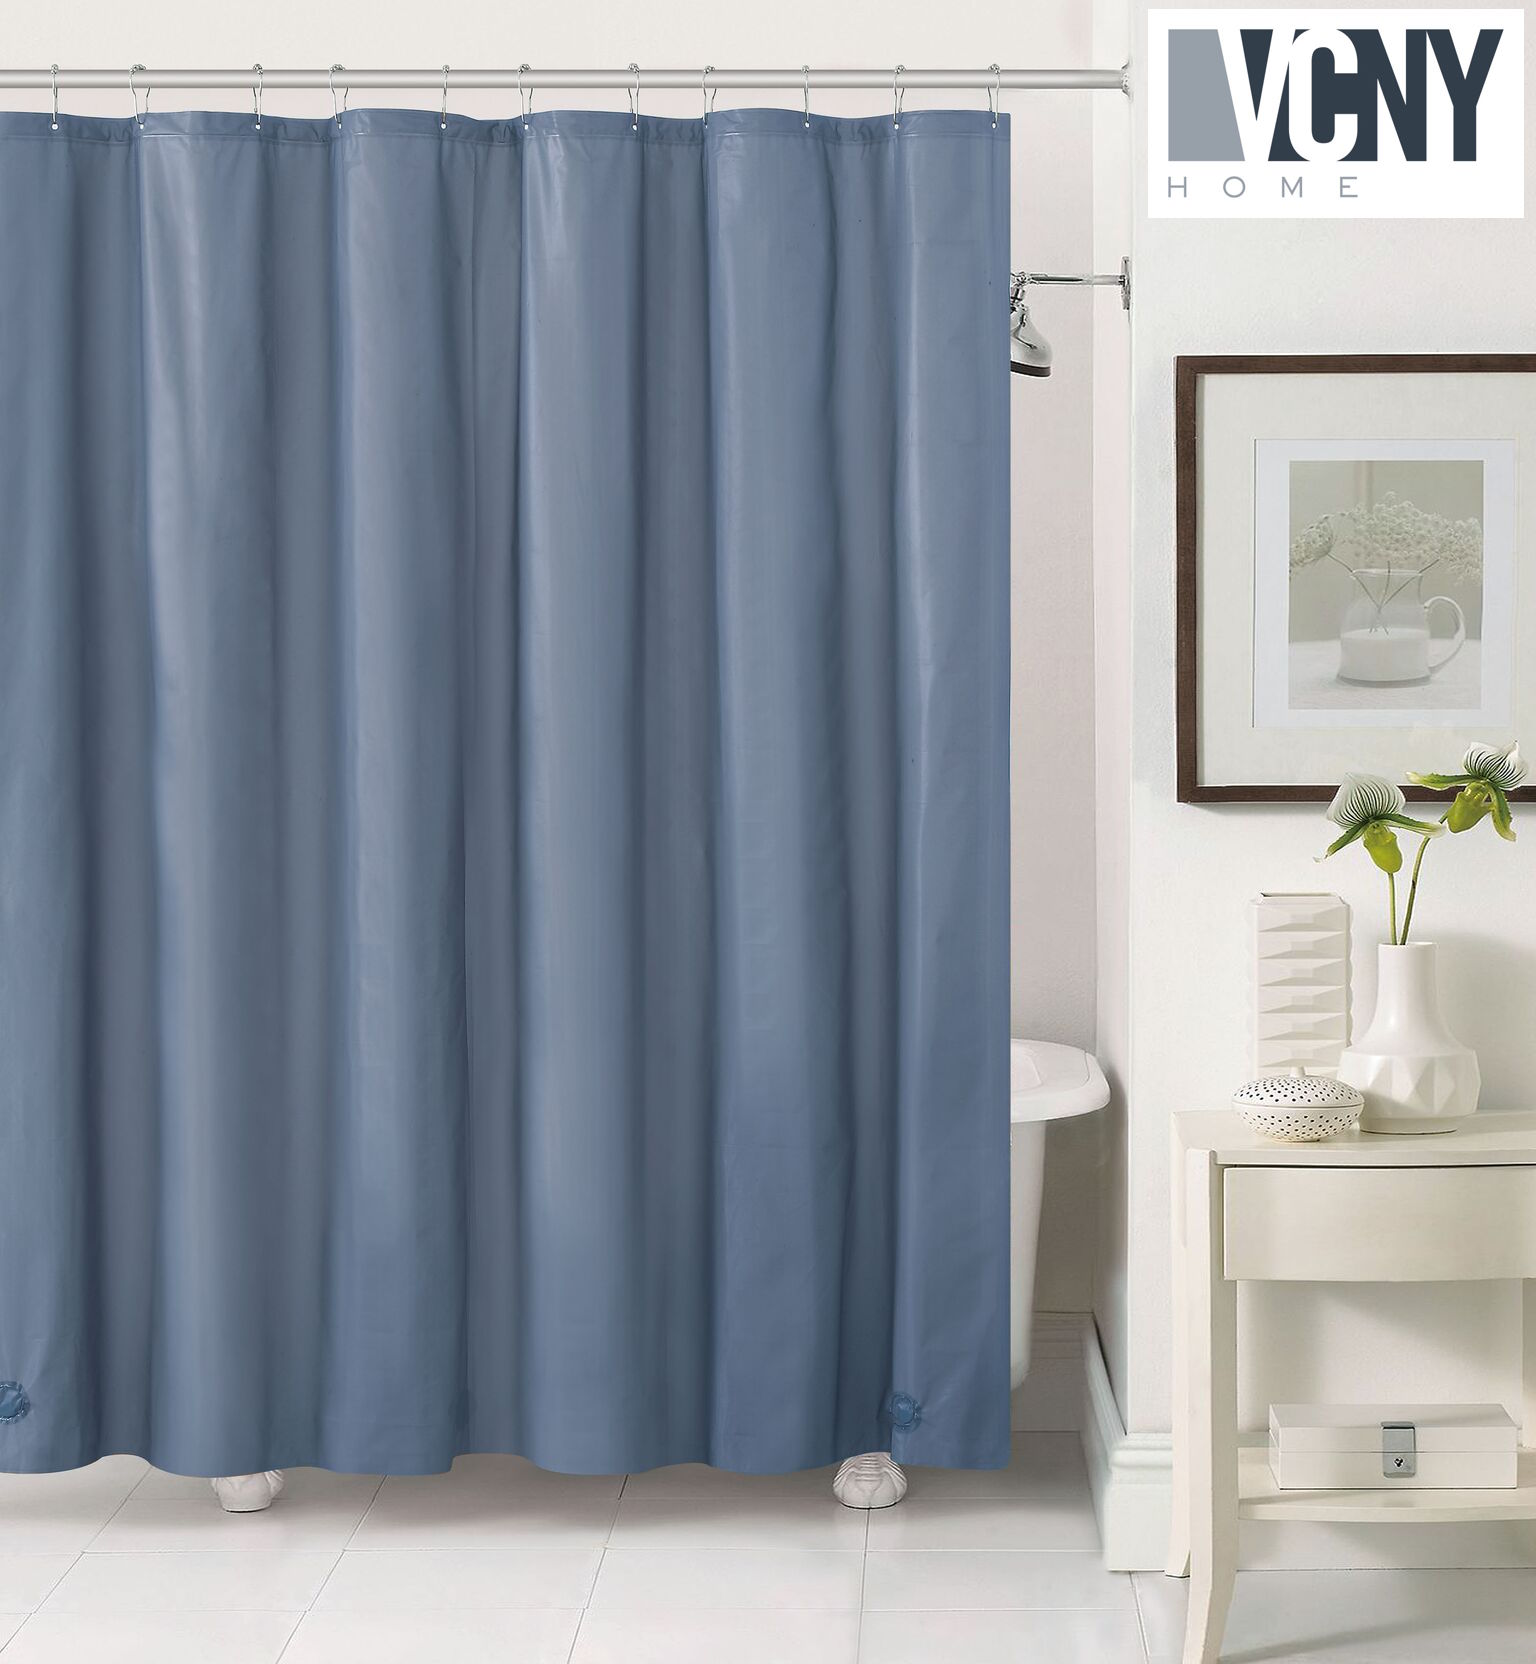 Peva Plastic Shower Curtain Liners With Magnets By Victoria Classics    Slate Blue